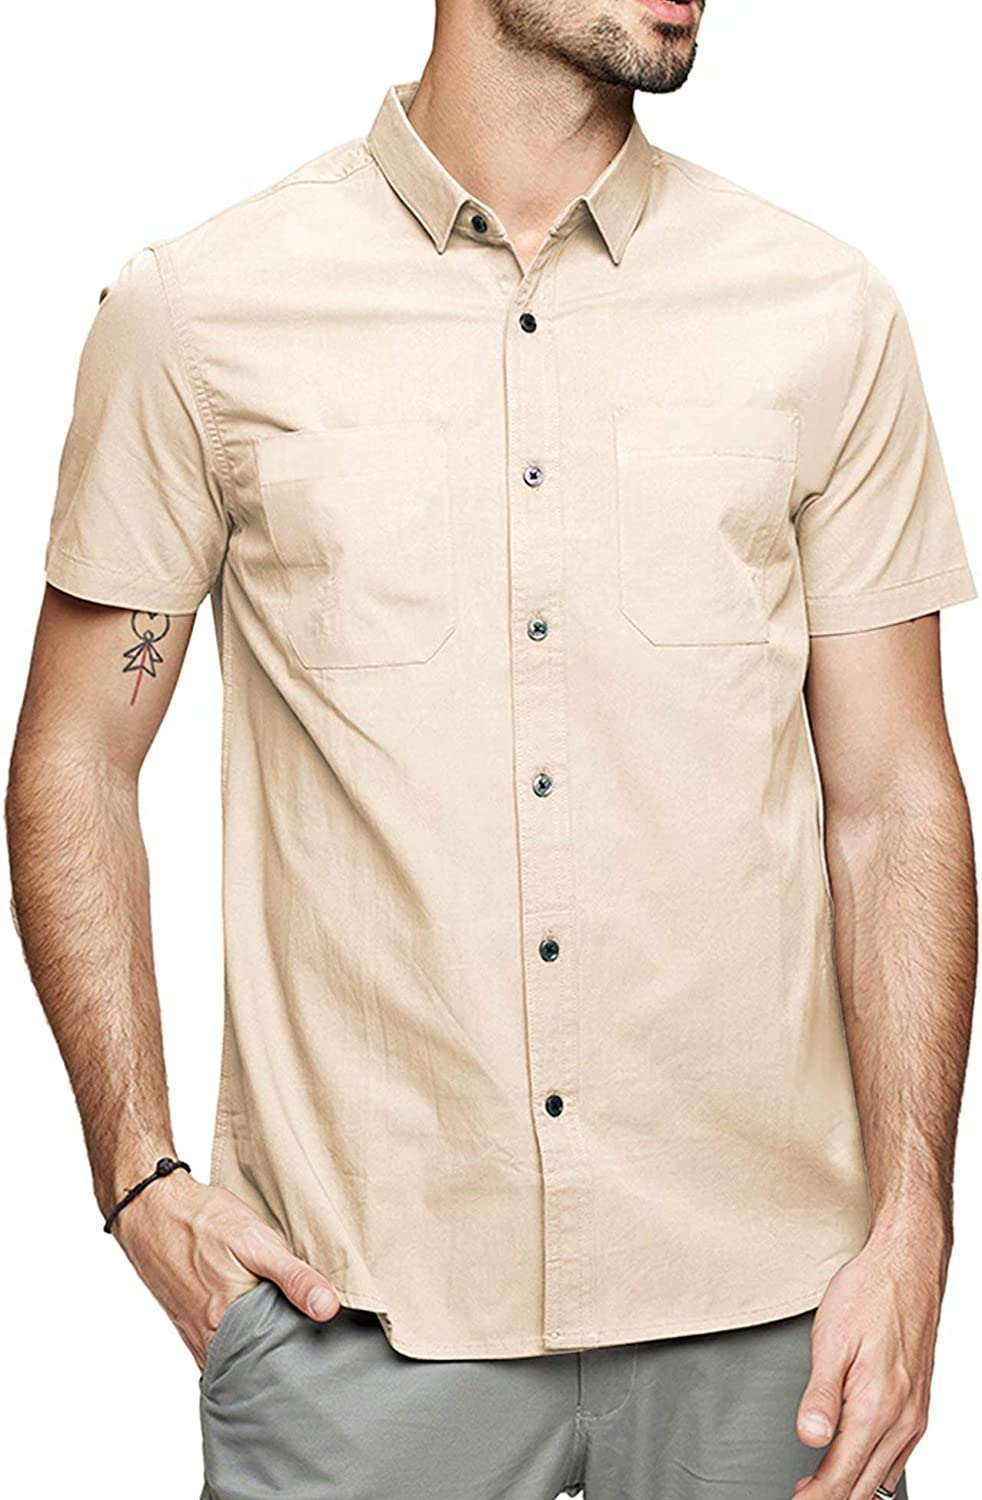 LecGee Mens Plaid Long Sleeve Shirts Button-Down Casual Flannel Shirts Regular Fit with Two Pockets